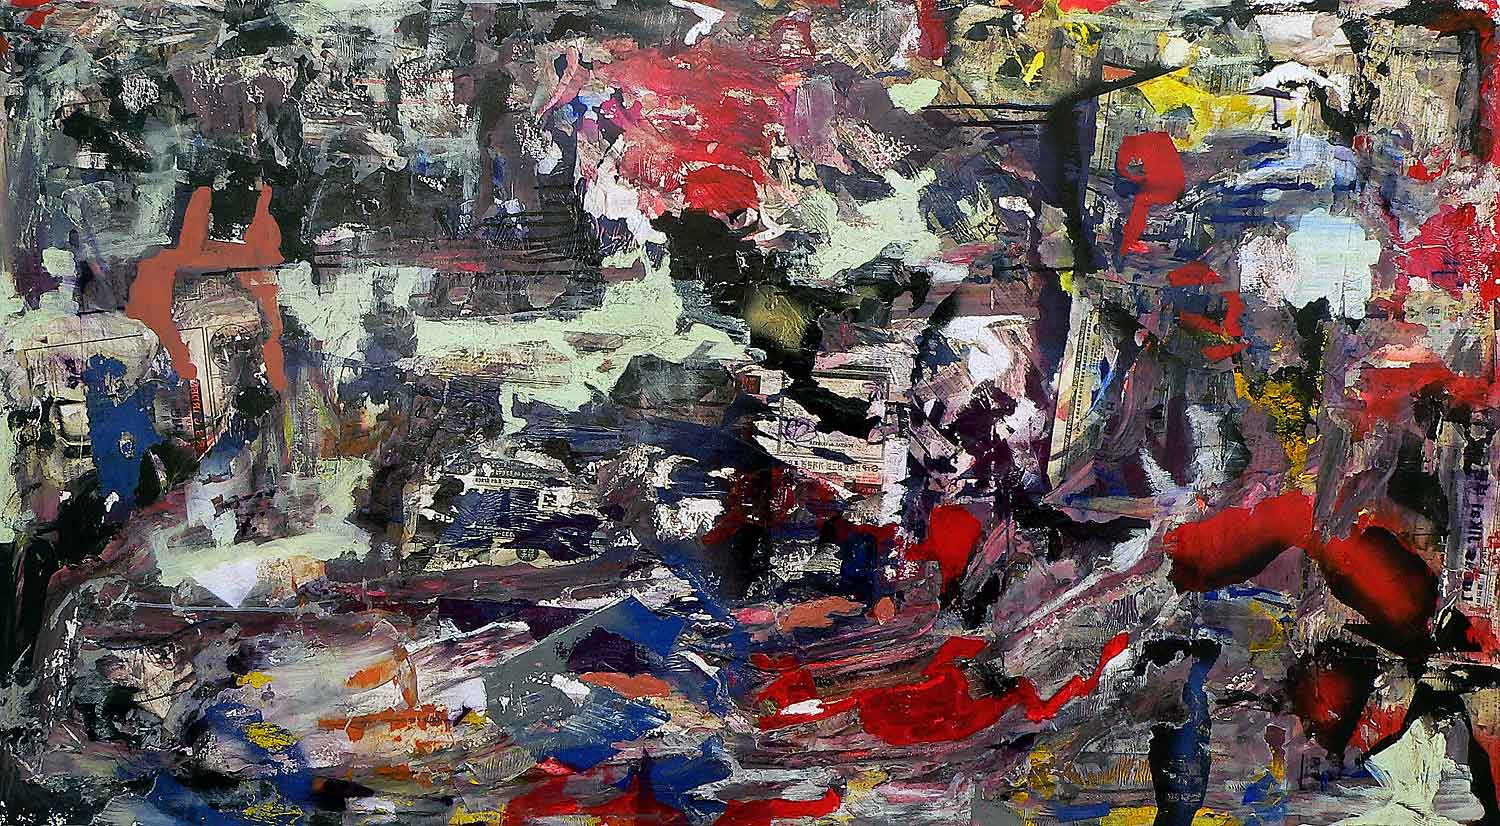 blues connotation - 120 x 216 cm - acrylic and collage on canvas - 2009